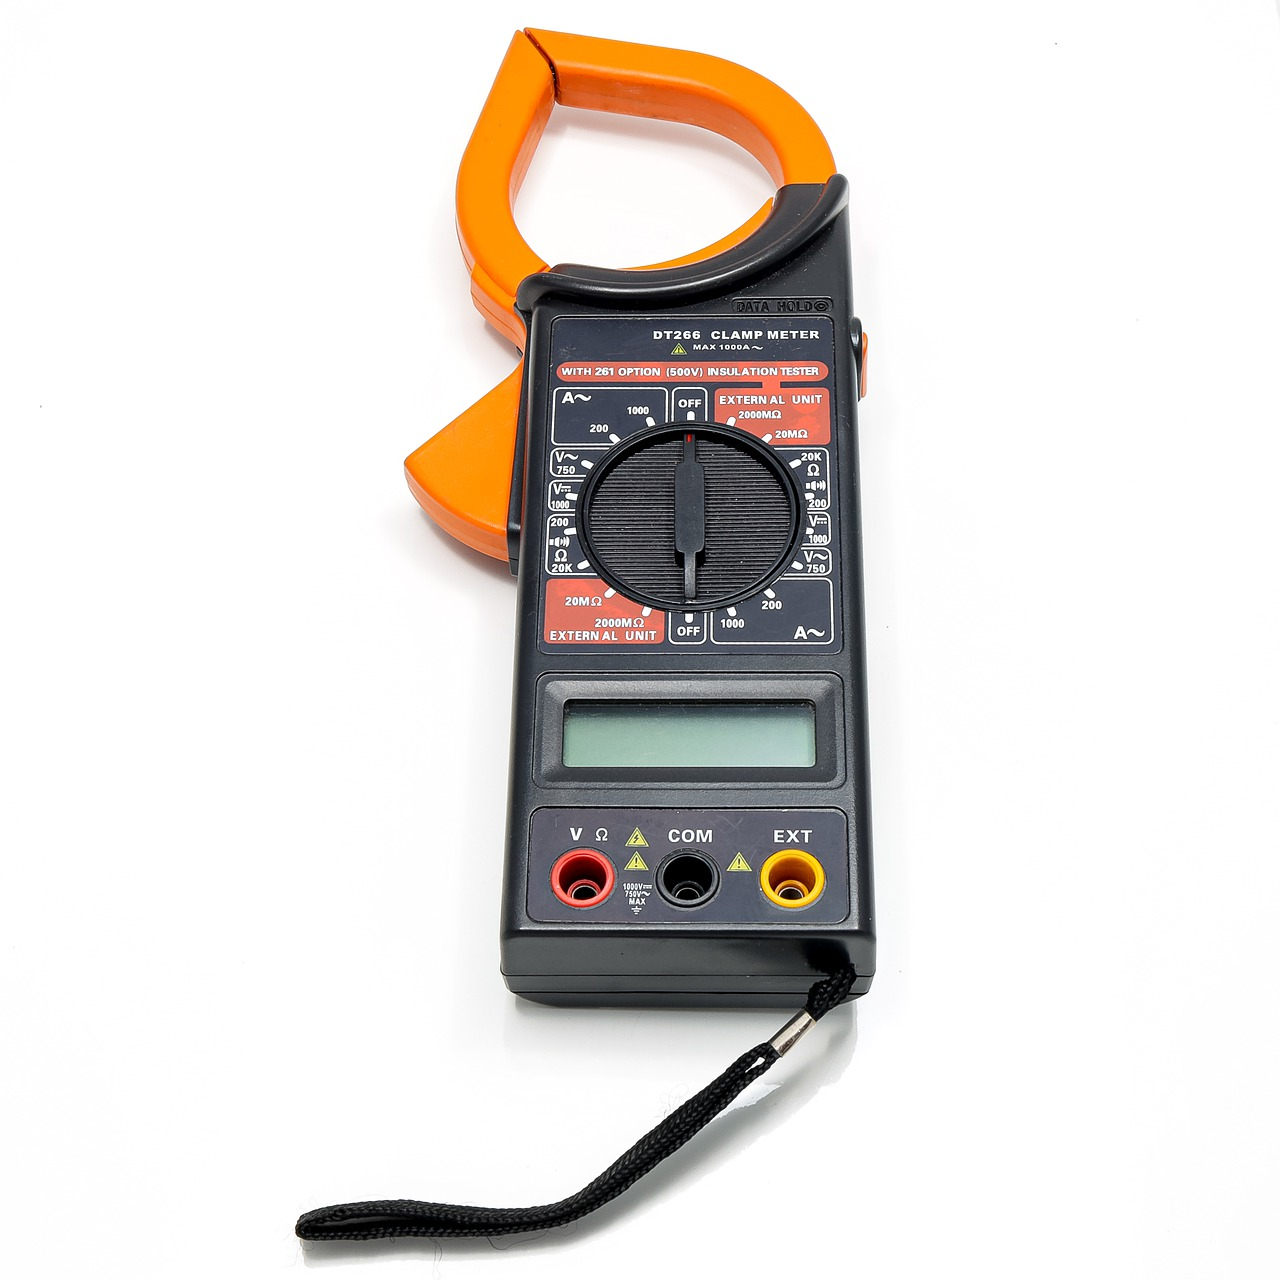 CONSIDERATIONS TO MAKE WHEN BUYING AN ULTRASONIC THICKNESS GAUGE